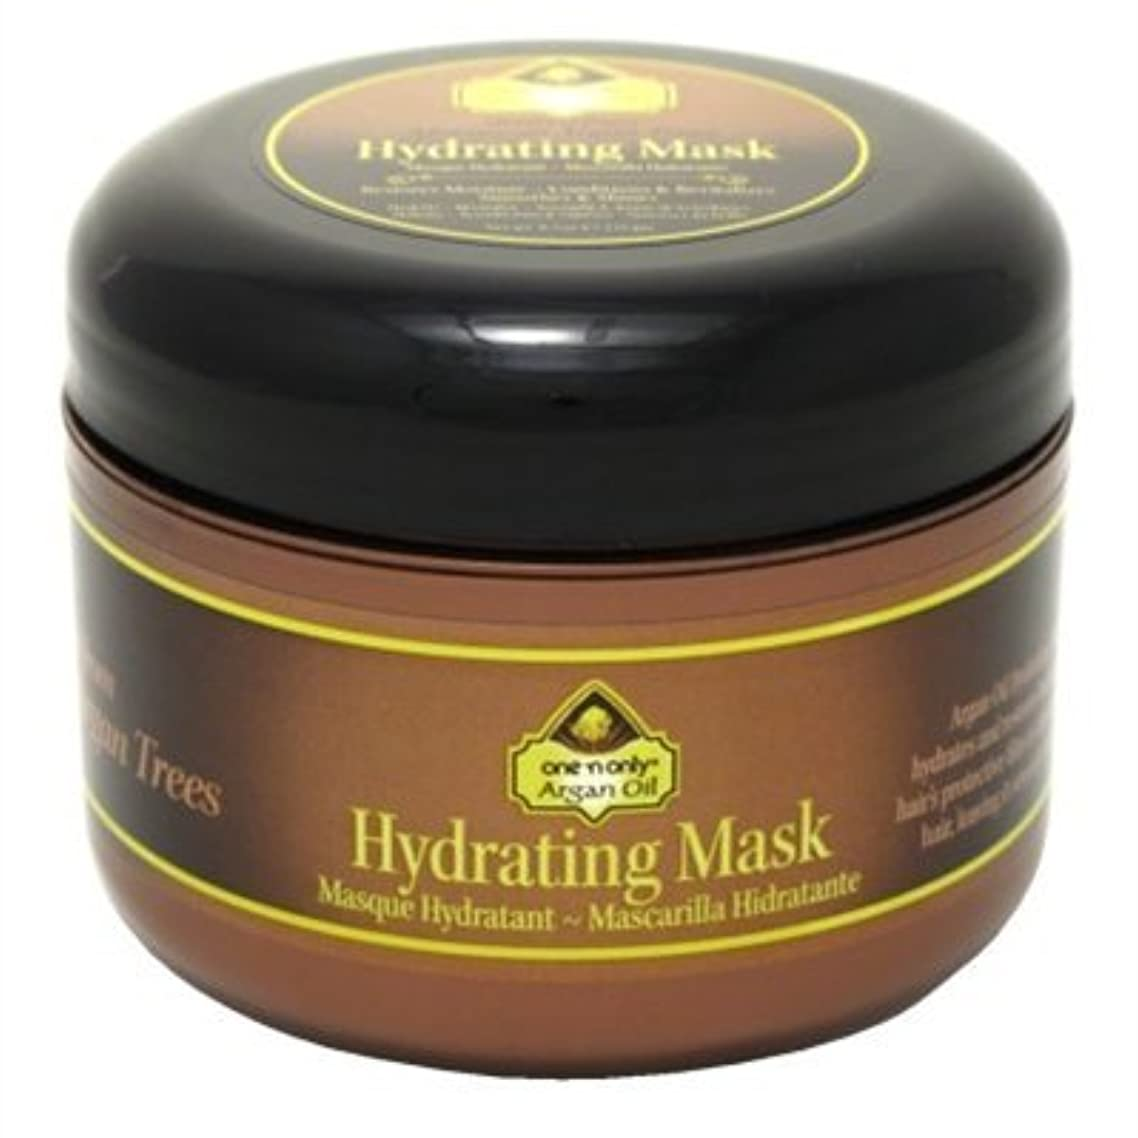 One N Only Argan Oil Hydrating Mask 8.5 Ounce Treatment Jar (251ml) (3 Pack)